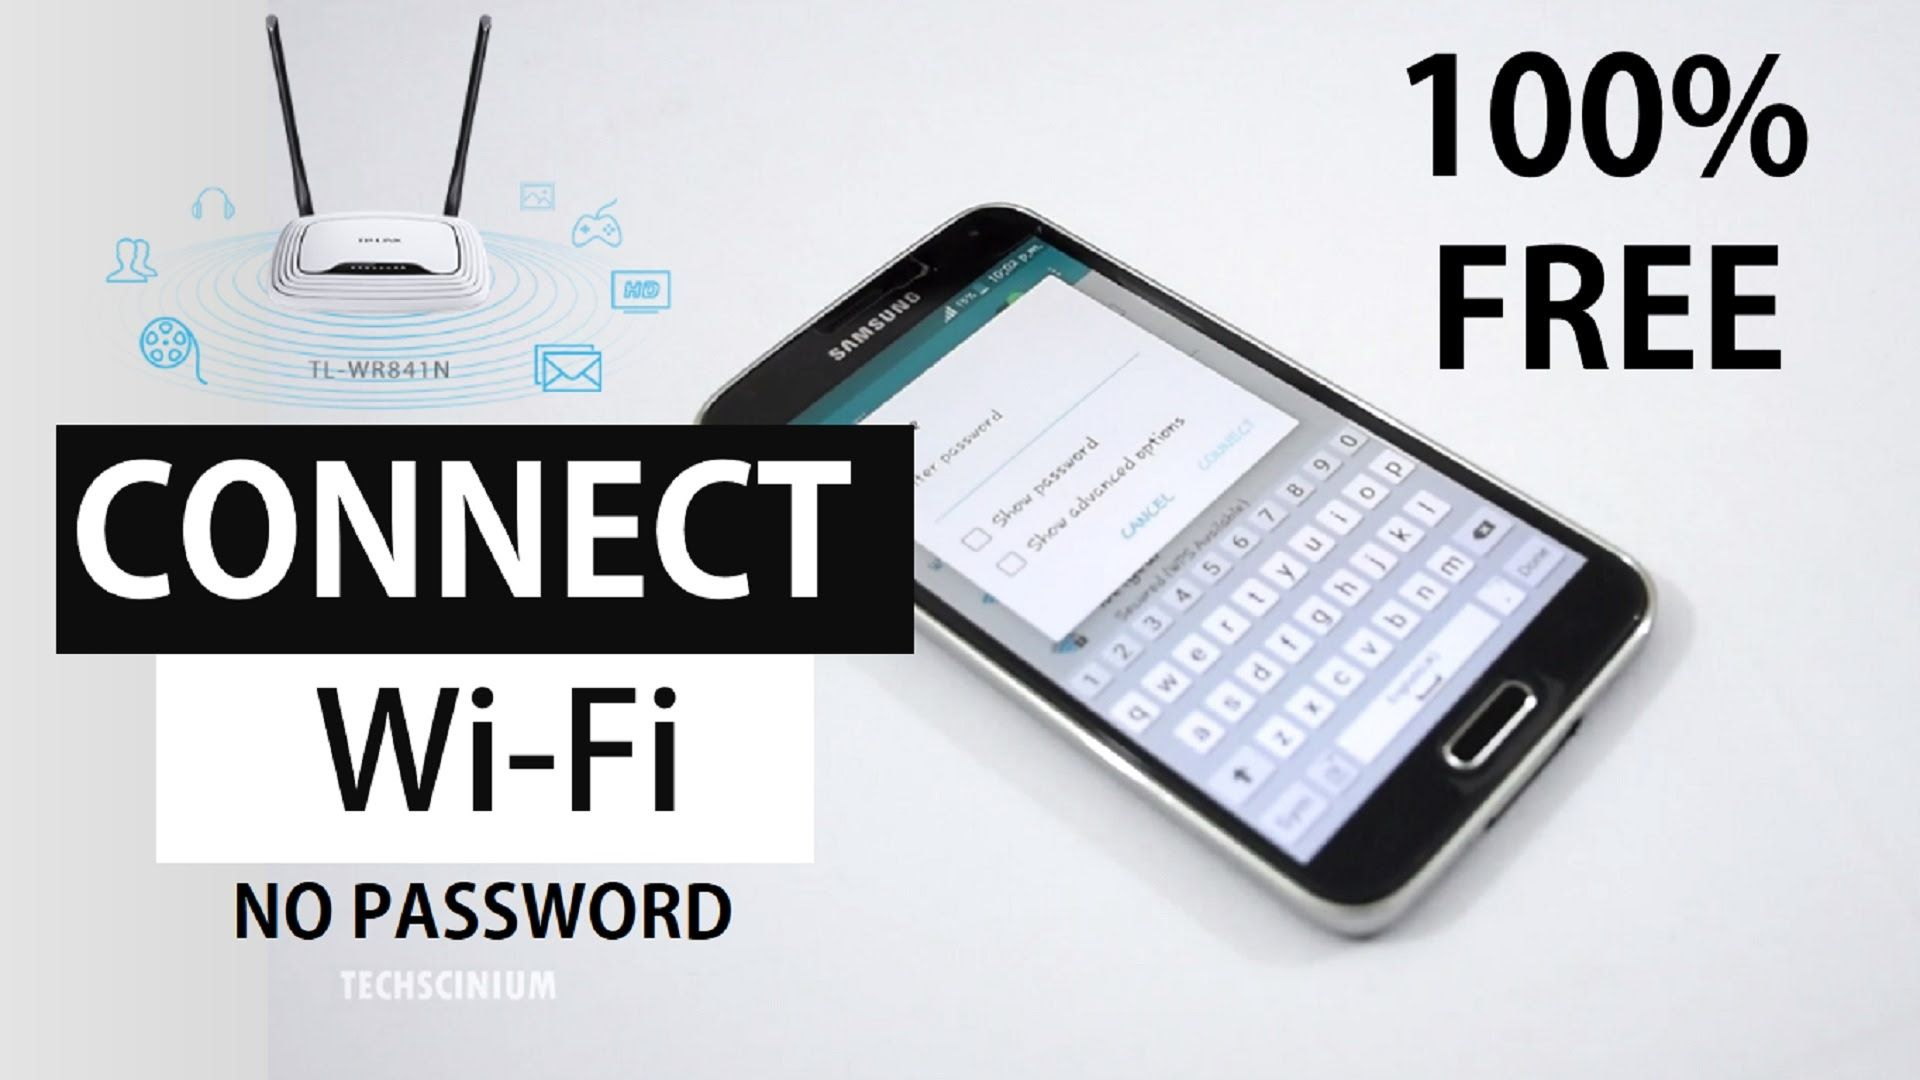 Connect any wifi without password 2016 iphone